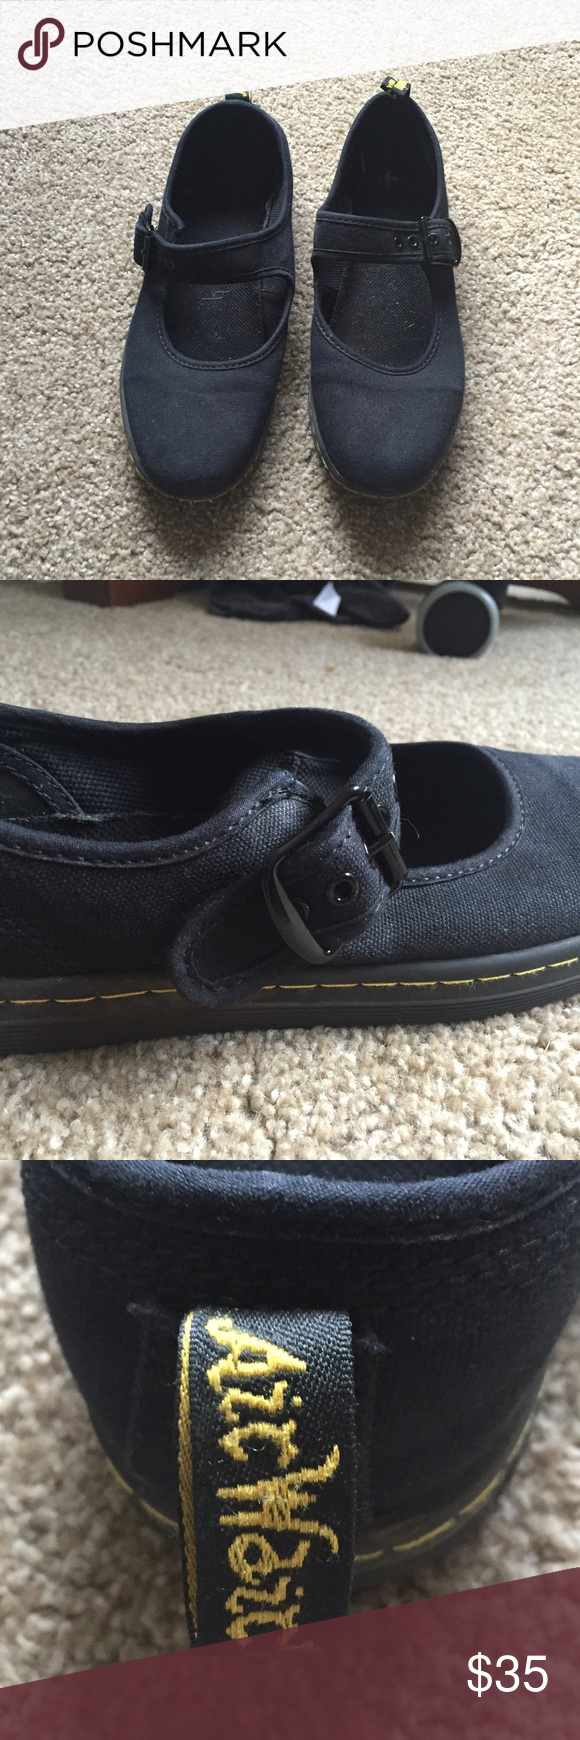 Dr. Martens Mary Jane Black Dr. Martens mary jane style flat with buckle closure. Size 8, bought new online and work only about 3 times Dr. Martens Shoes Flats & Loafers